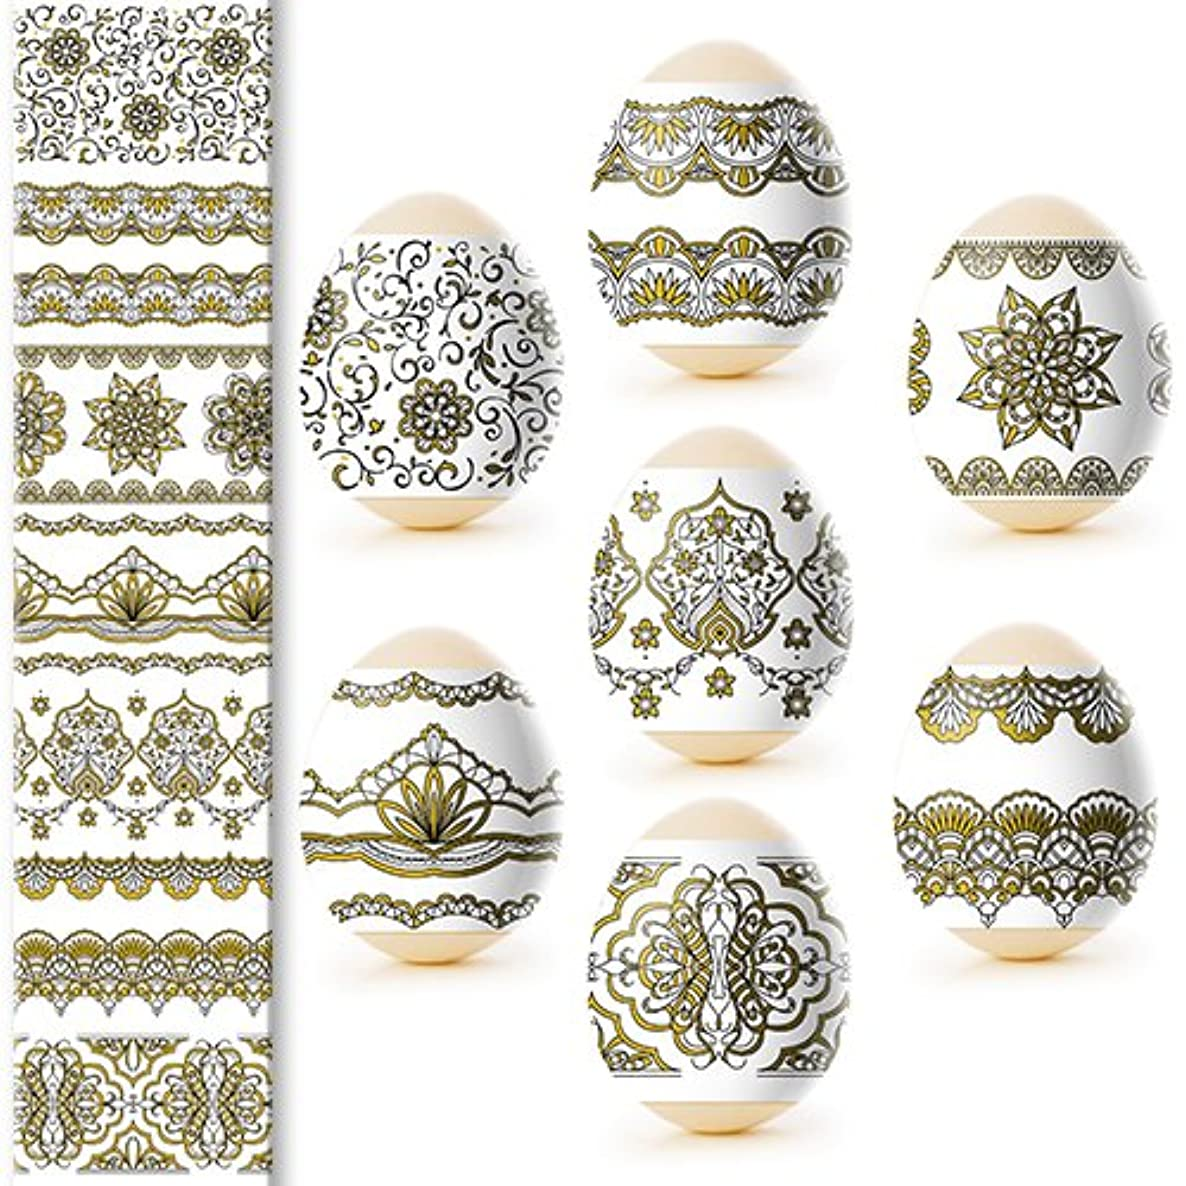 Ukrainian Heat Shrink Wrap Sleeve Decoration Easter Egg Wrappers Pysanka Arounds Set (Golden Eggs)